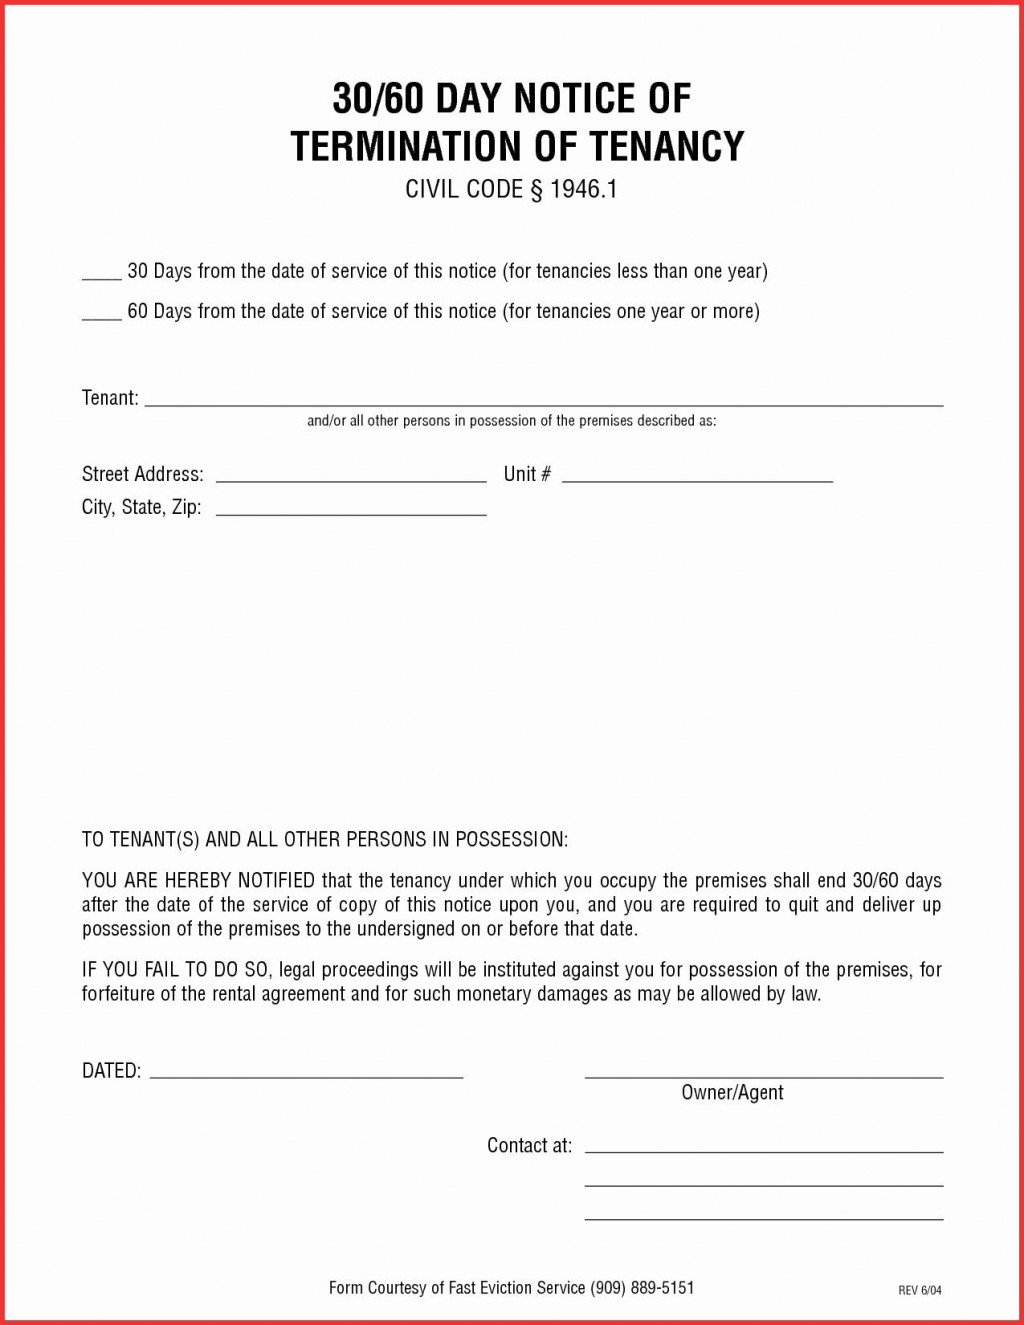 009 Excellent 30 Day Eviction Notice Template High Resolution  Pdf FormLarge